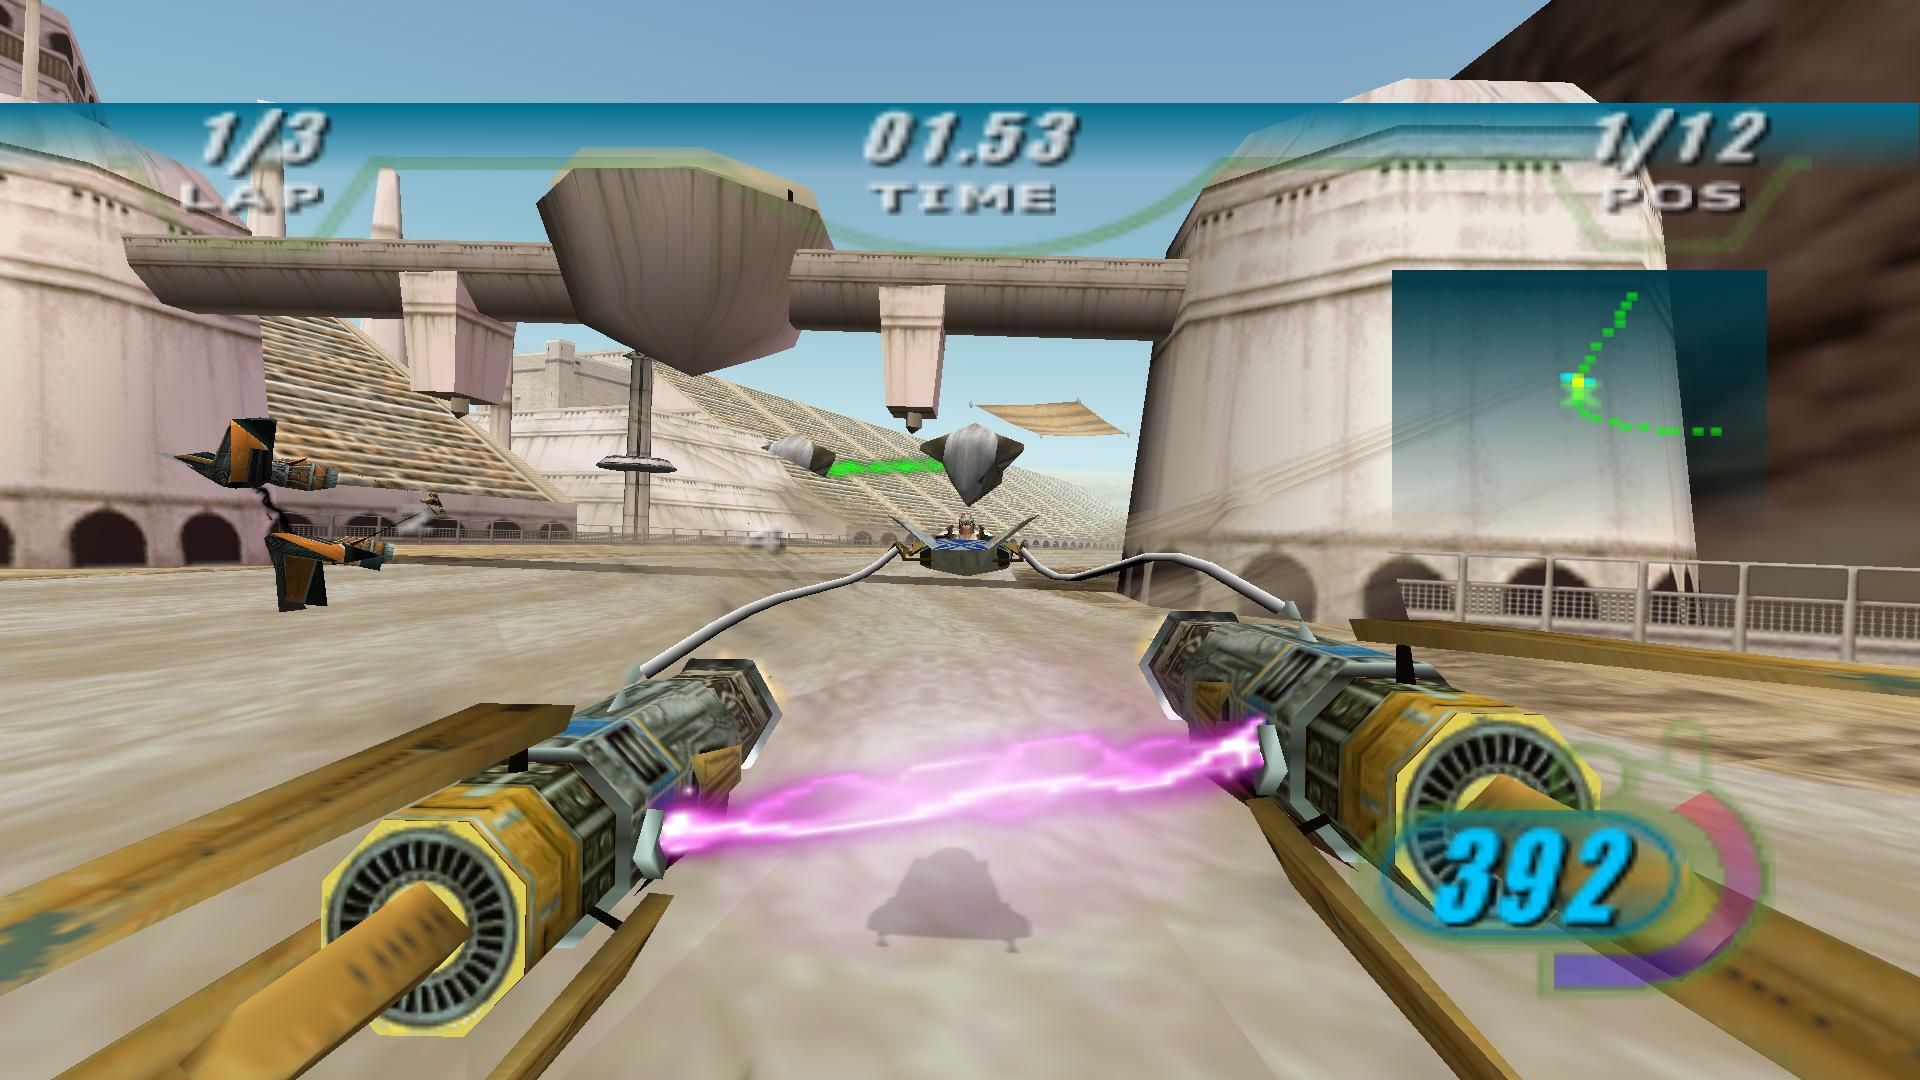 STAR WARS Episode I: Racer screenshot 1